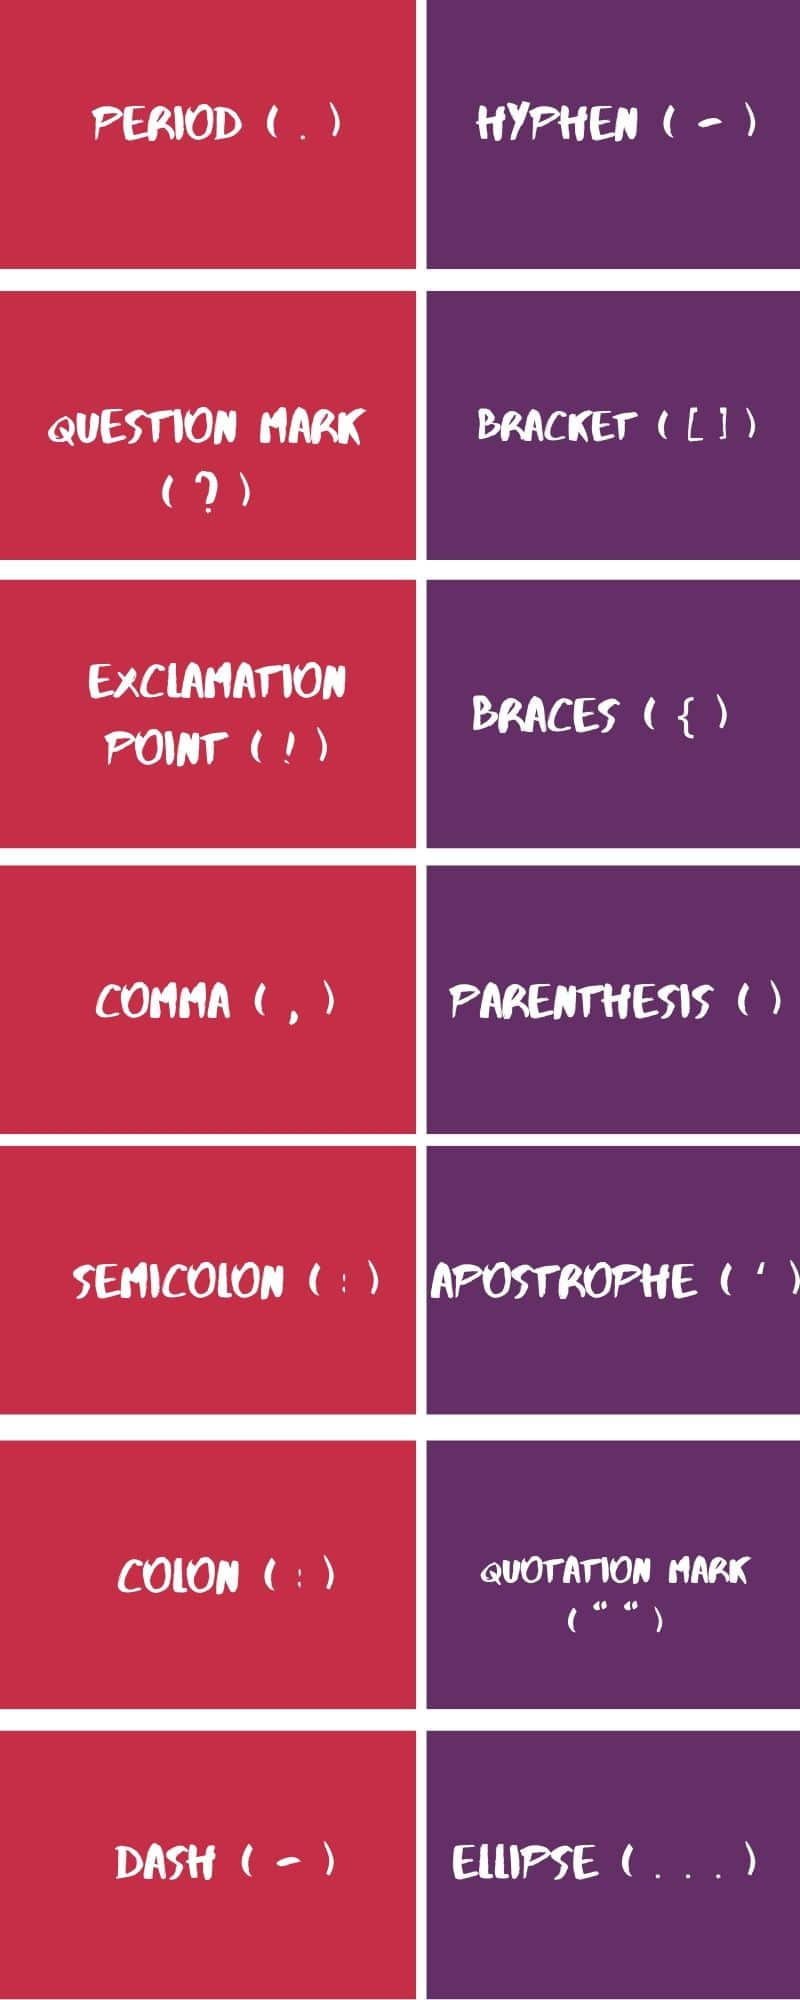 14-punctuation-marks